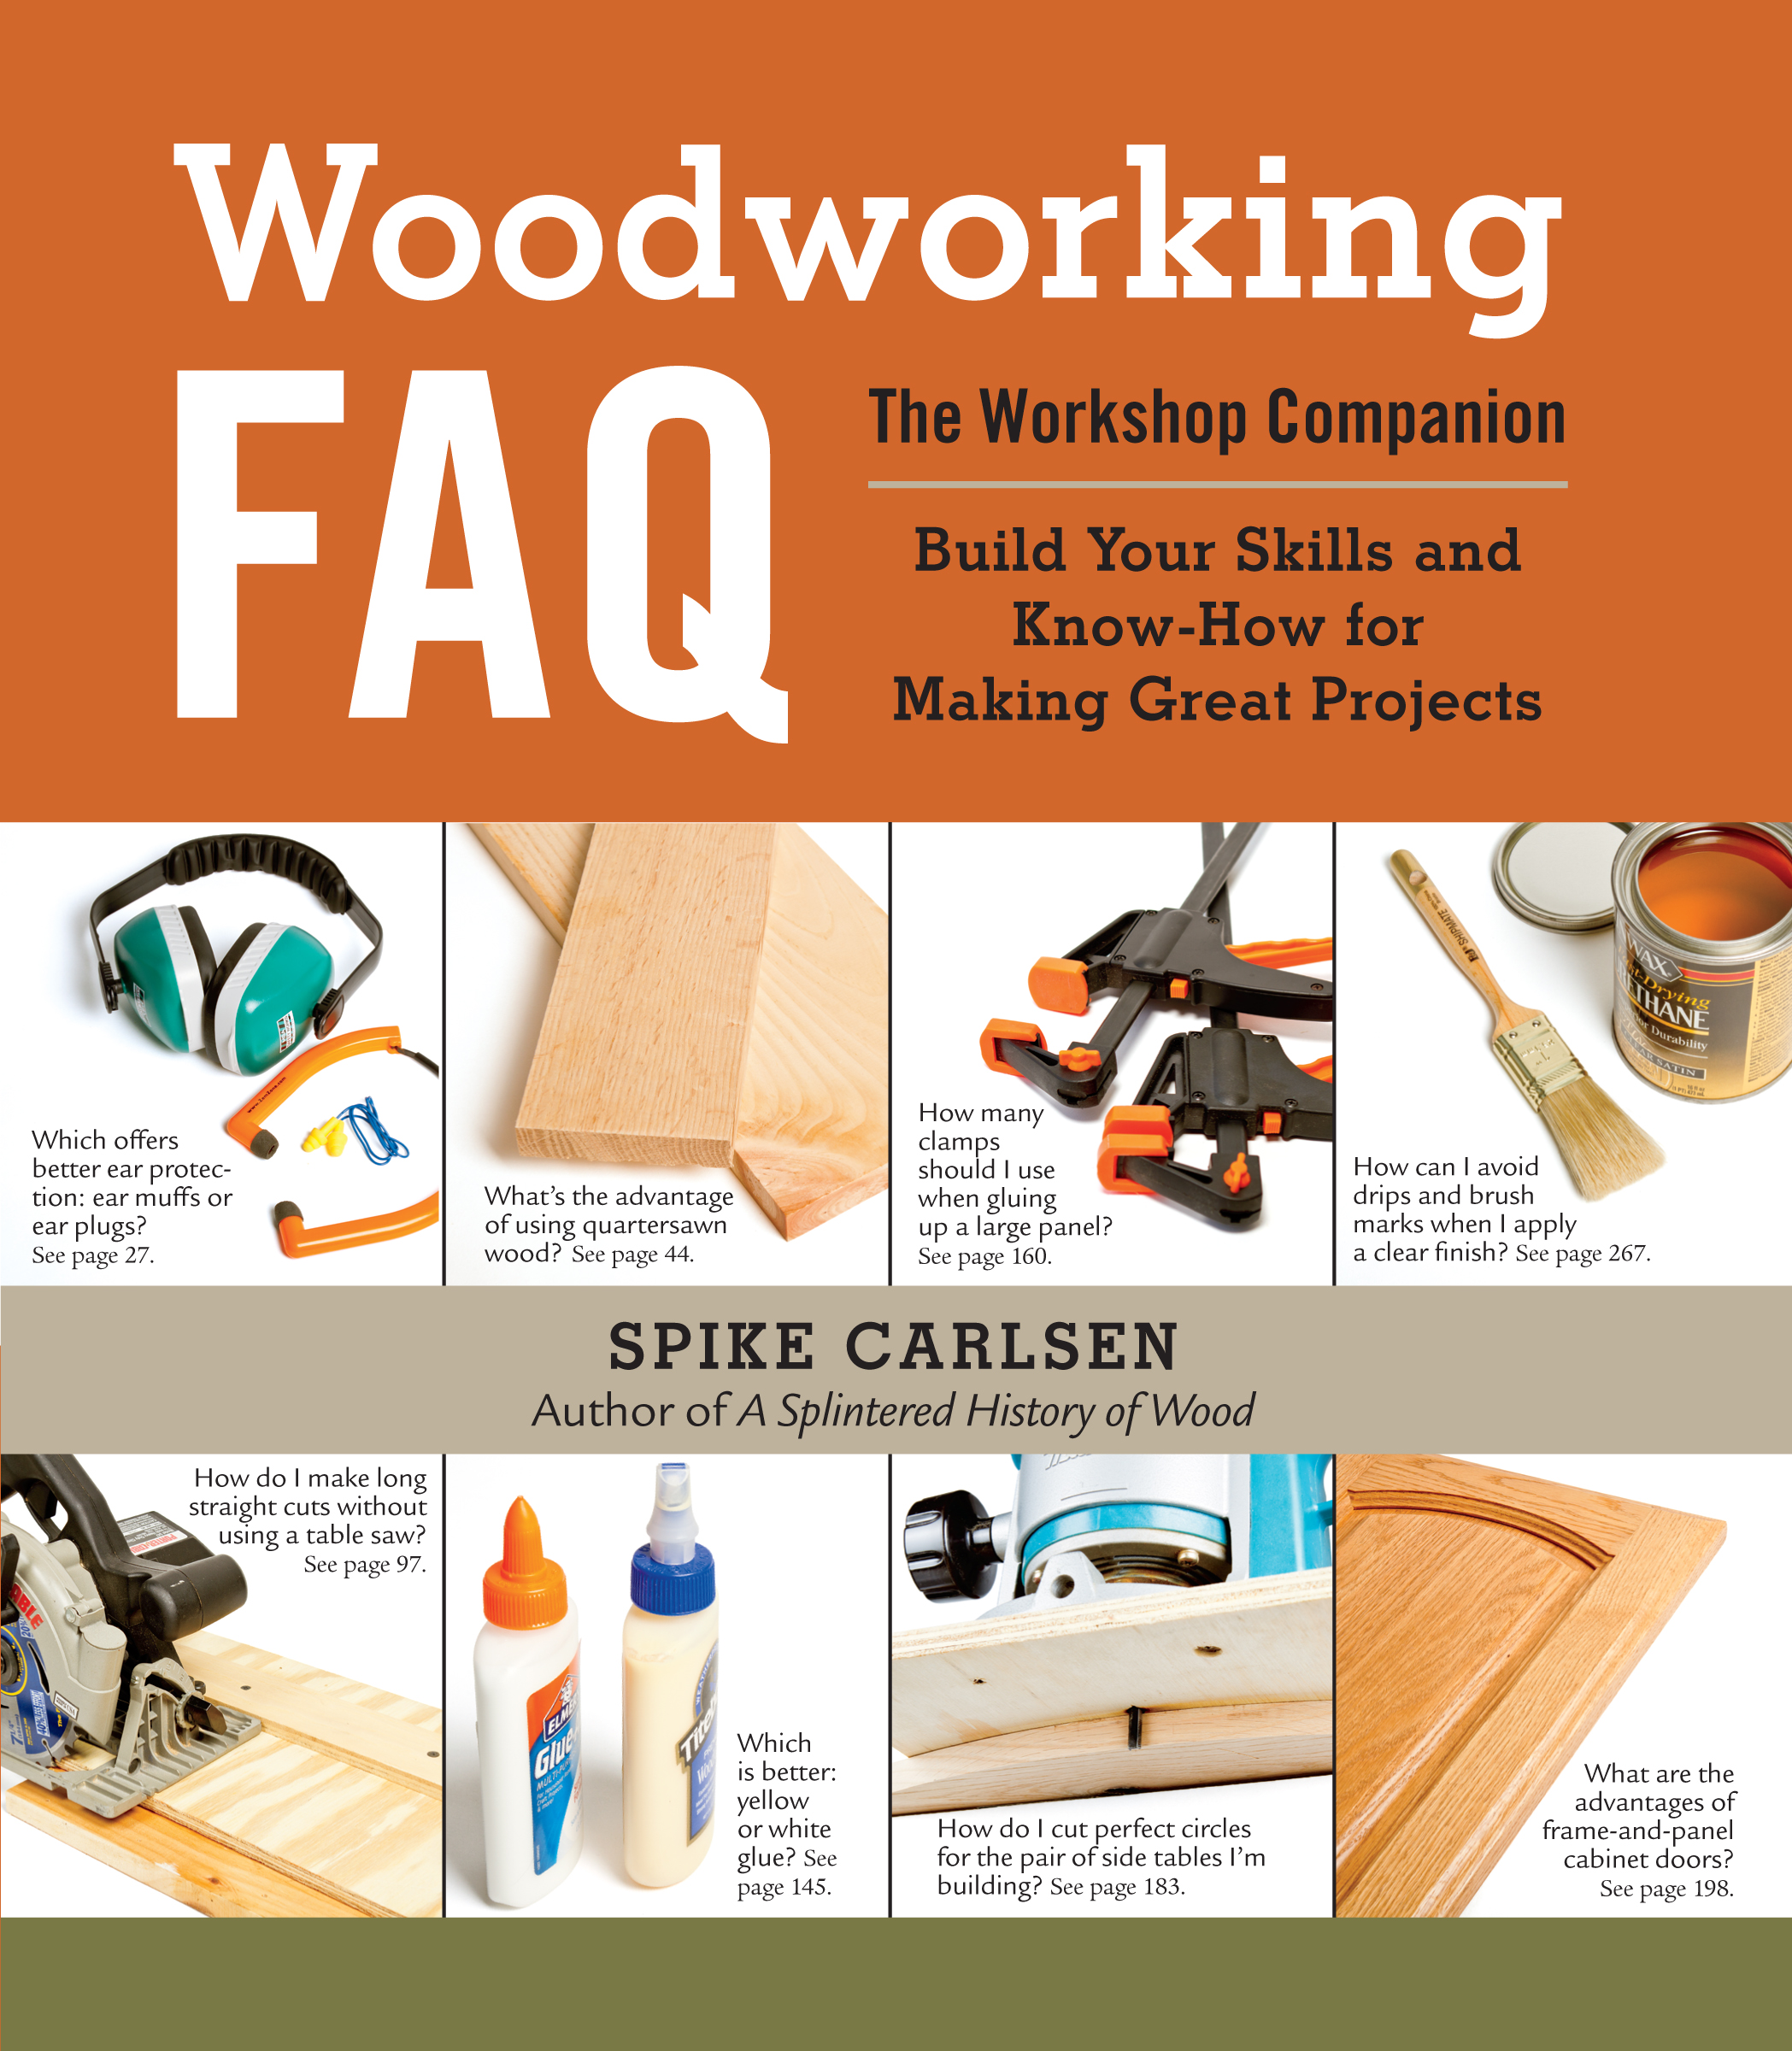 Woodworking FAQ The Workshop Companion: Build Your Skills and Know-How for Making Great Projects - Spike Carlsen